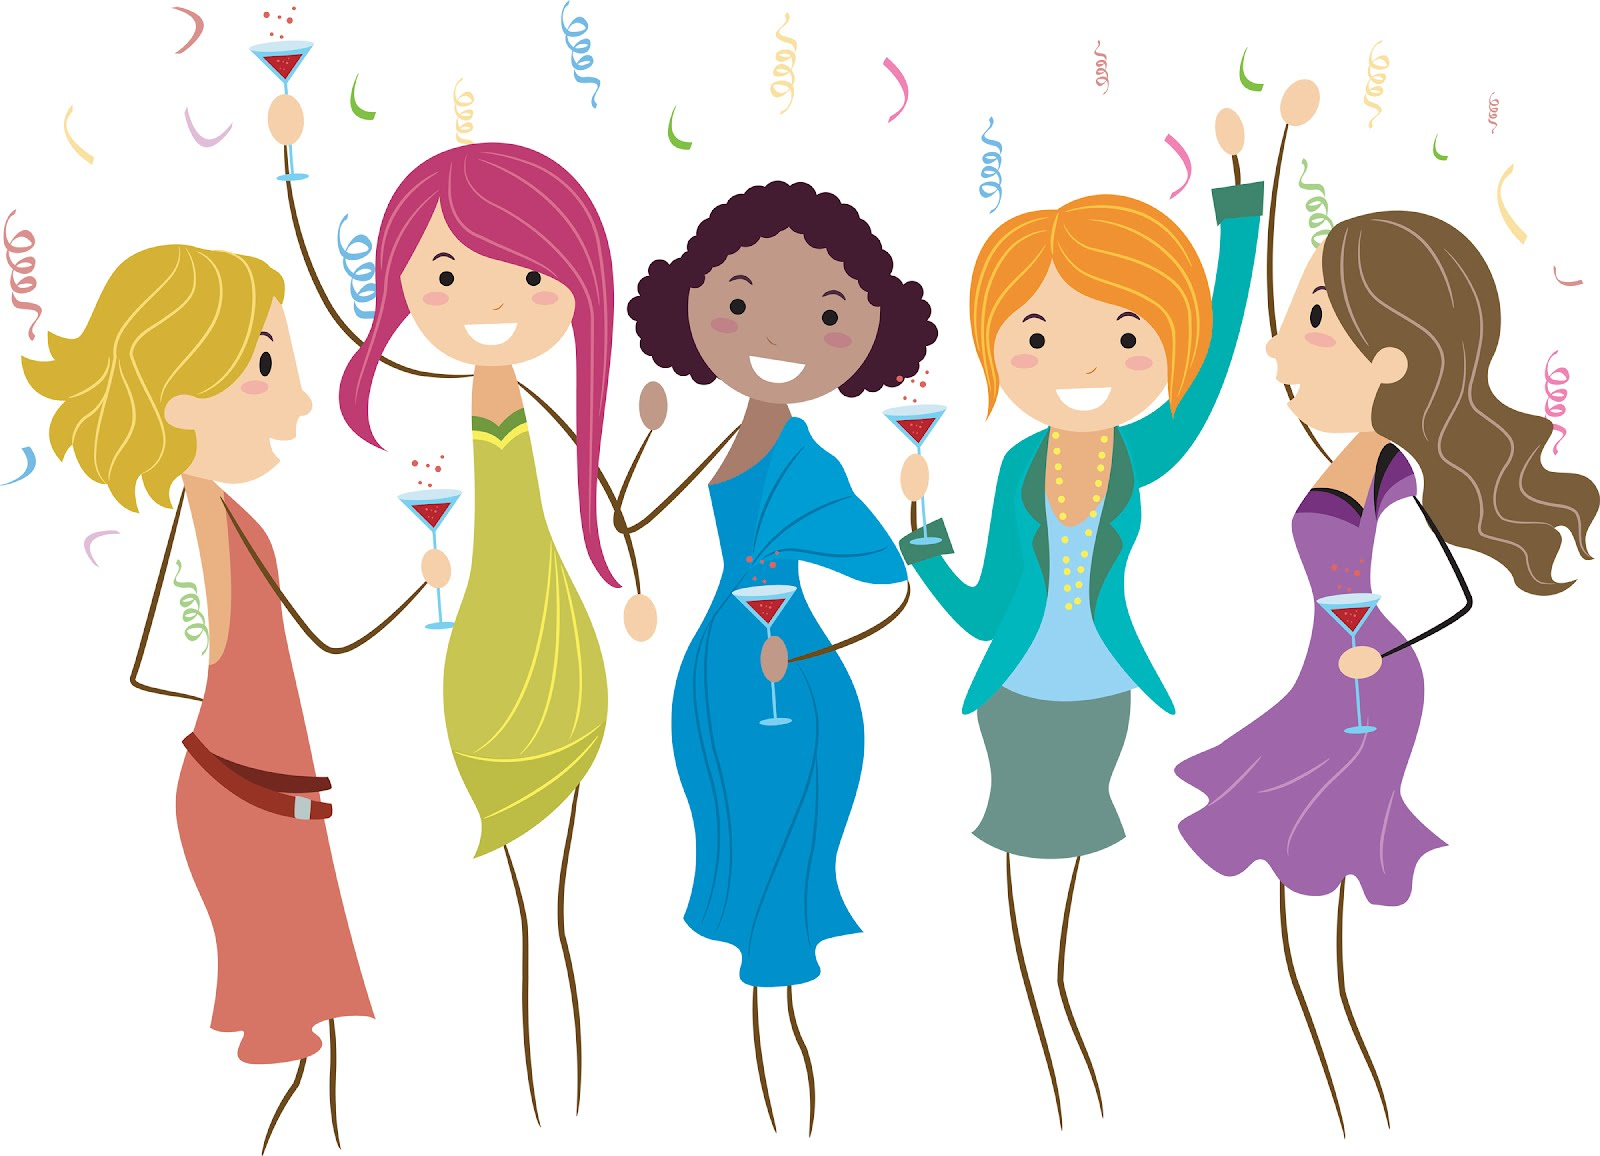 Girls Night Out Party Clip Art N2 free image.